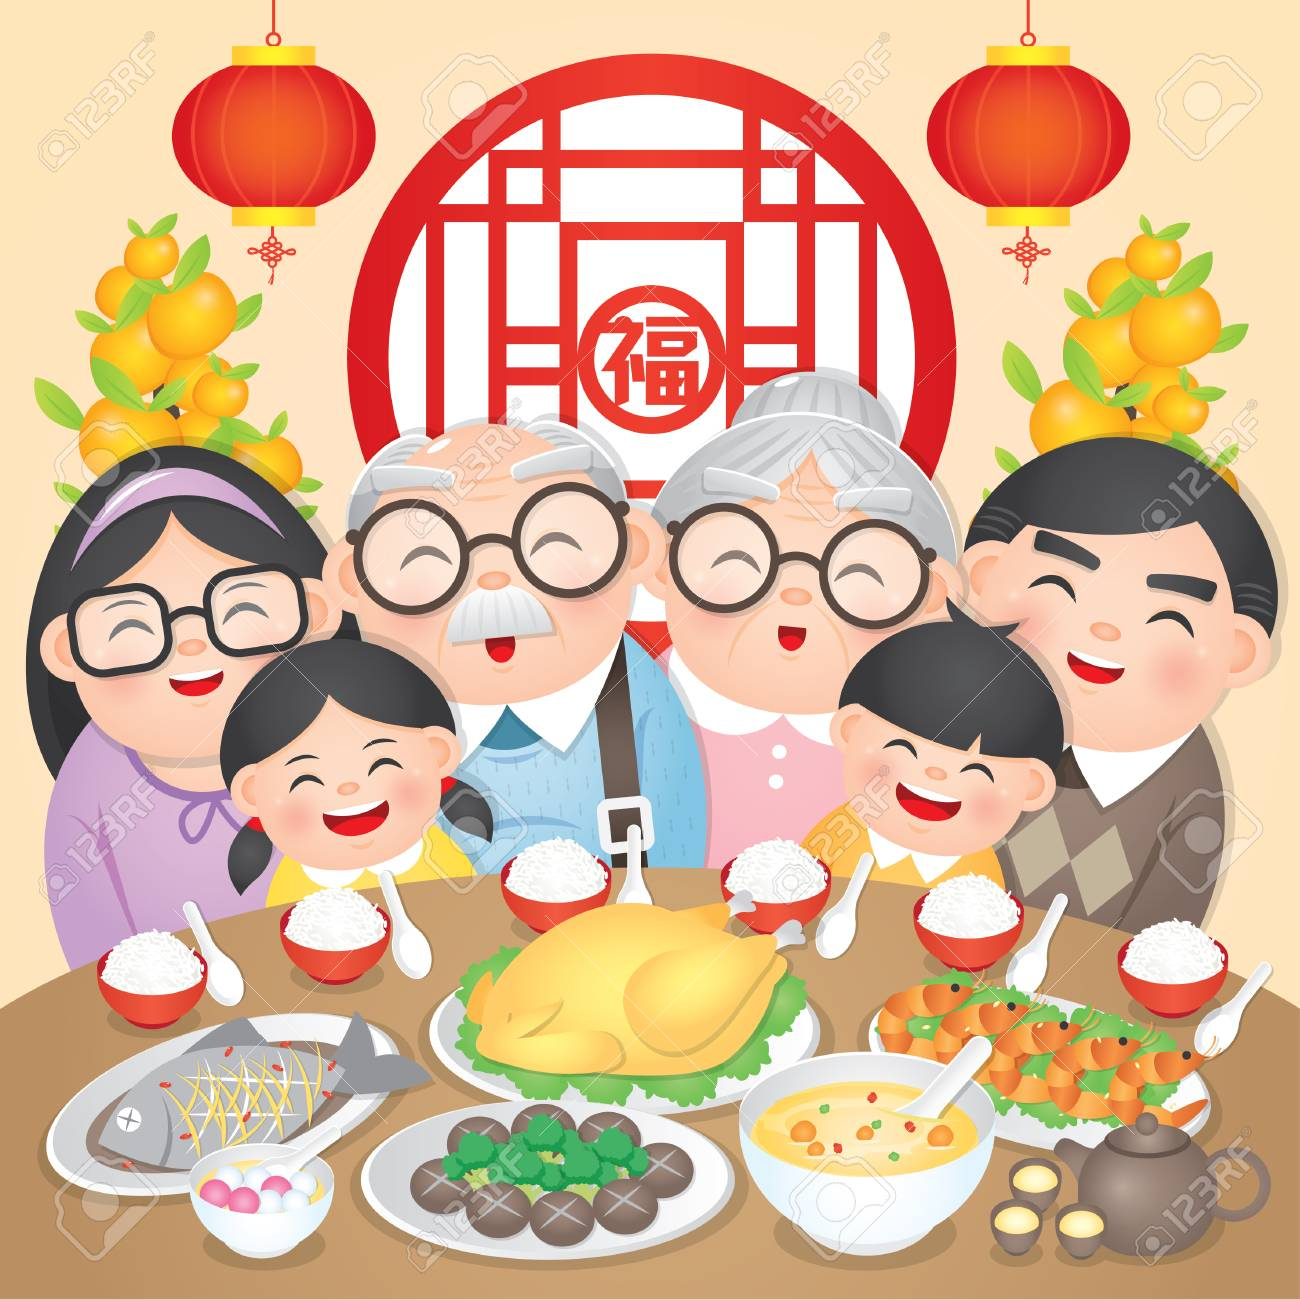 Chinese New Year Family Reunion Dinner Vector Illustration with delicious dishes, (Translation: Chinese New Year Eve, Reunion Dinner) - 114078808